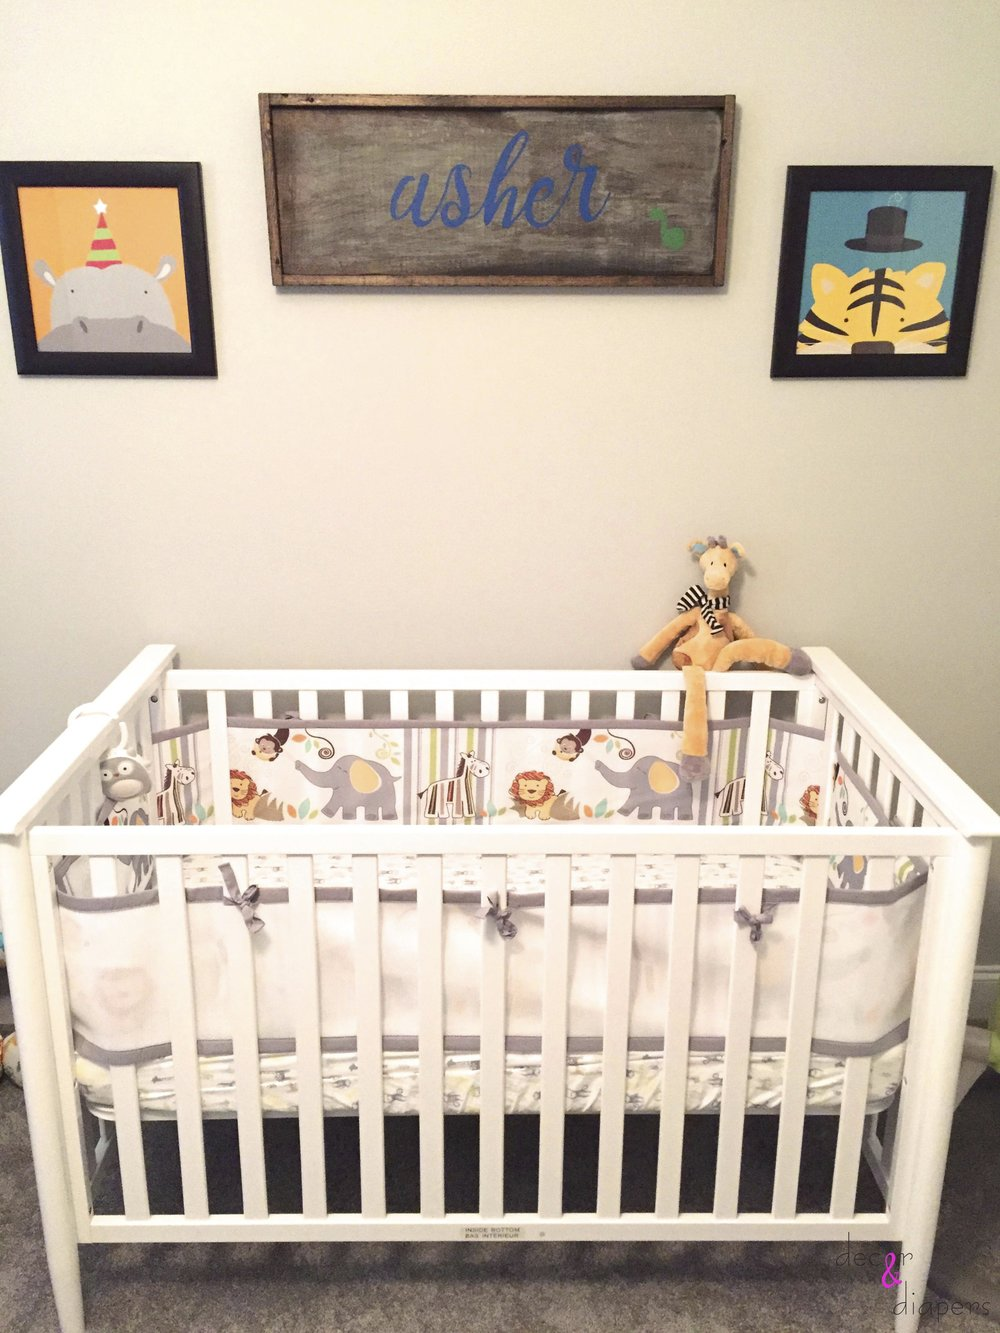 The crib and adorable diy name artwork (made by the clients)